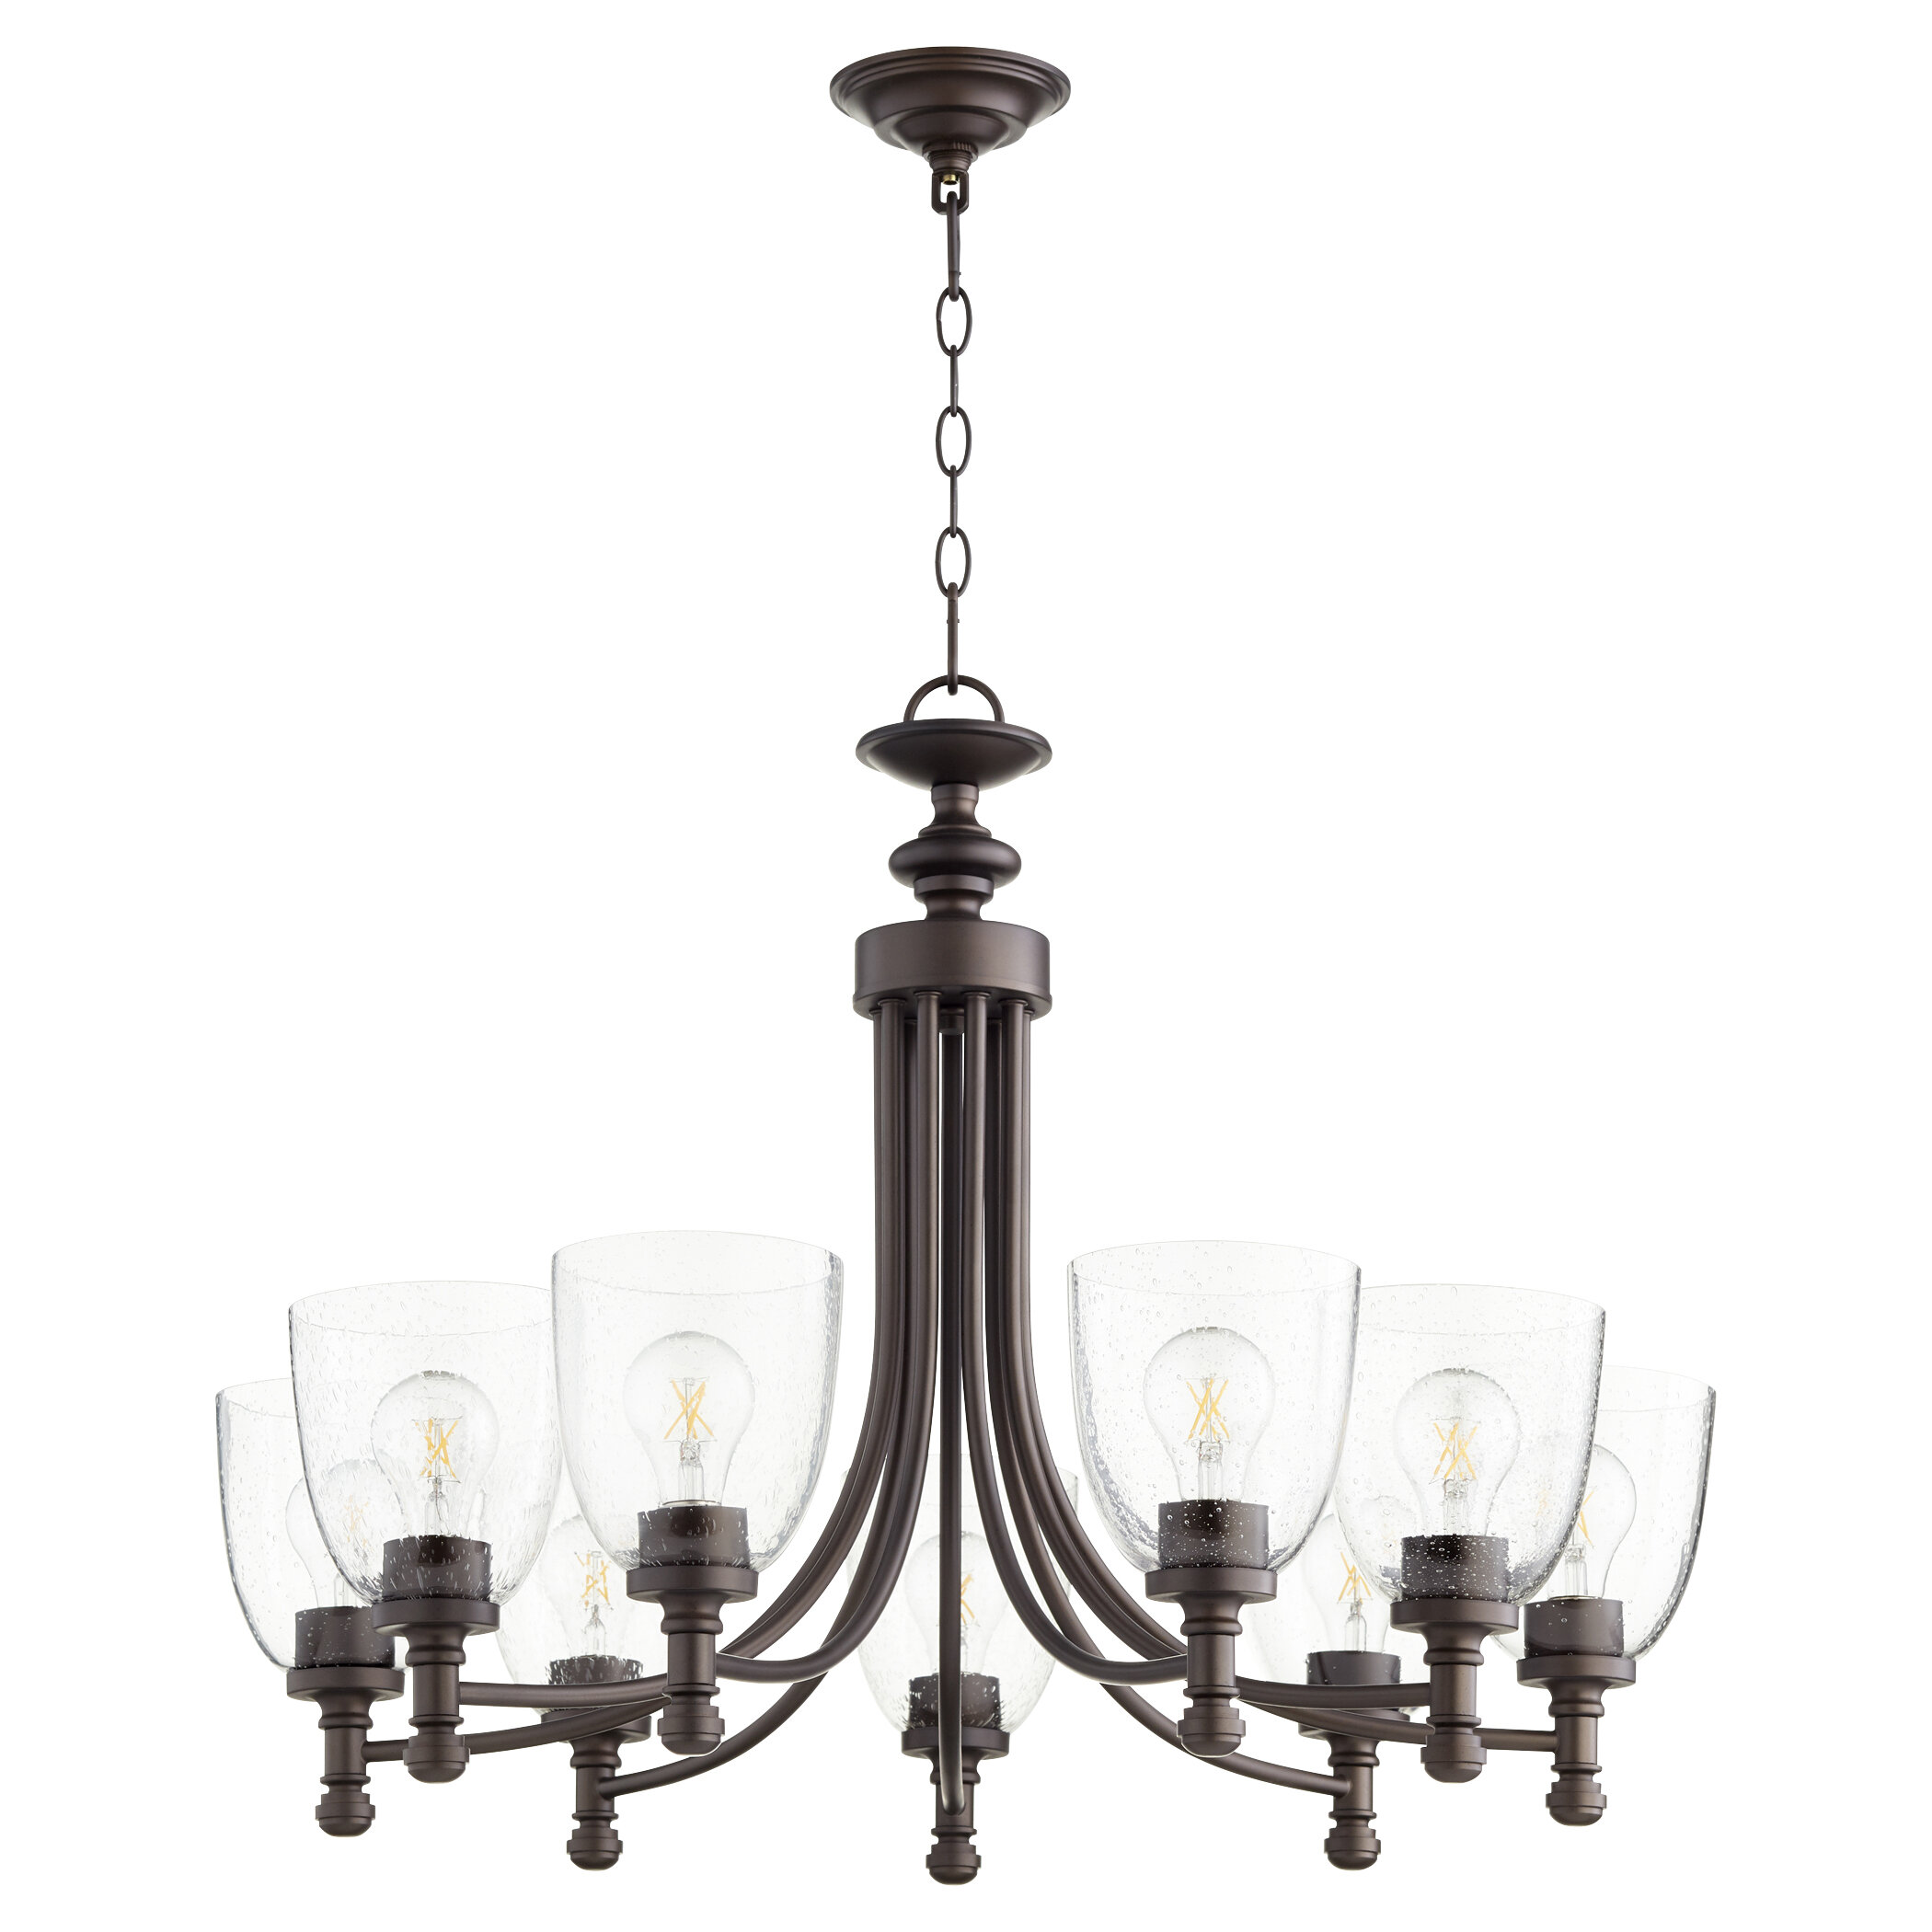 Large 27 34 Wide Shaded Chandeliers You Ll Love In 2021 Wayfair